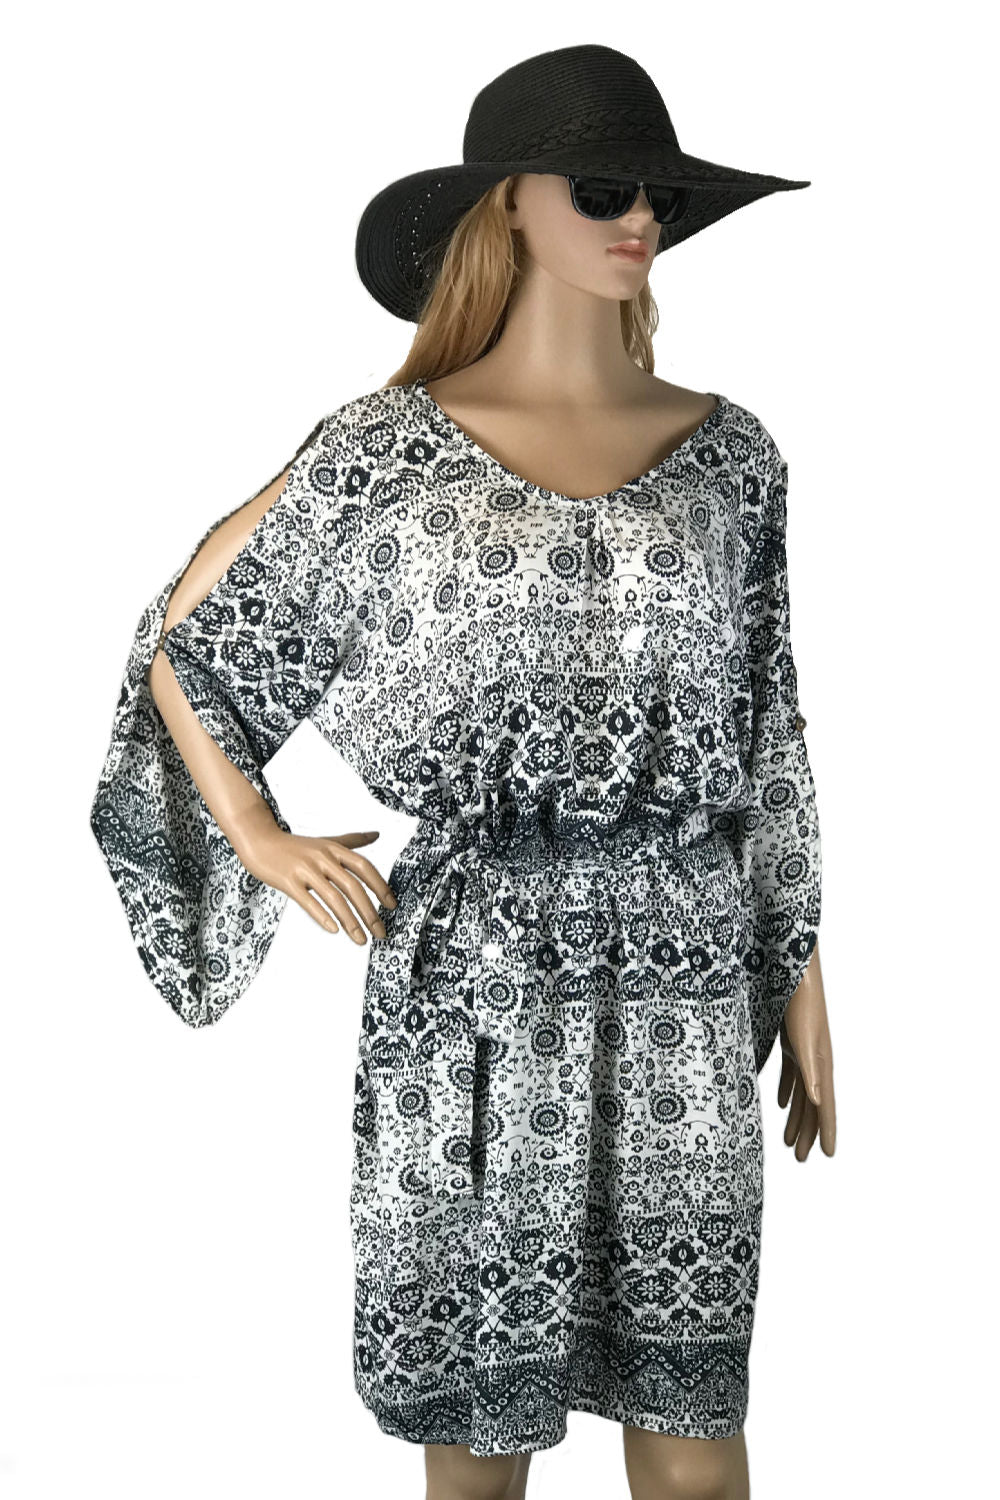 summer-dress-black-white-geometric-floral-design